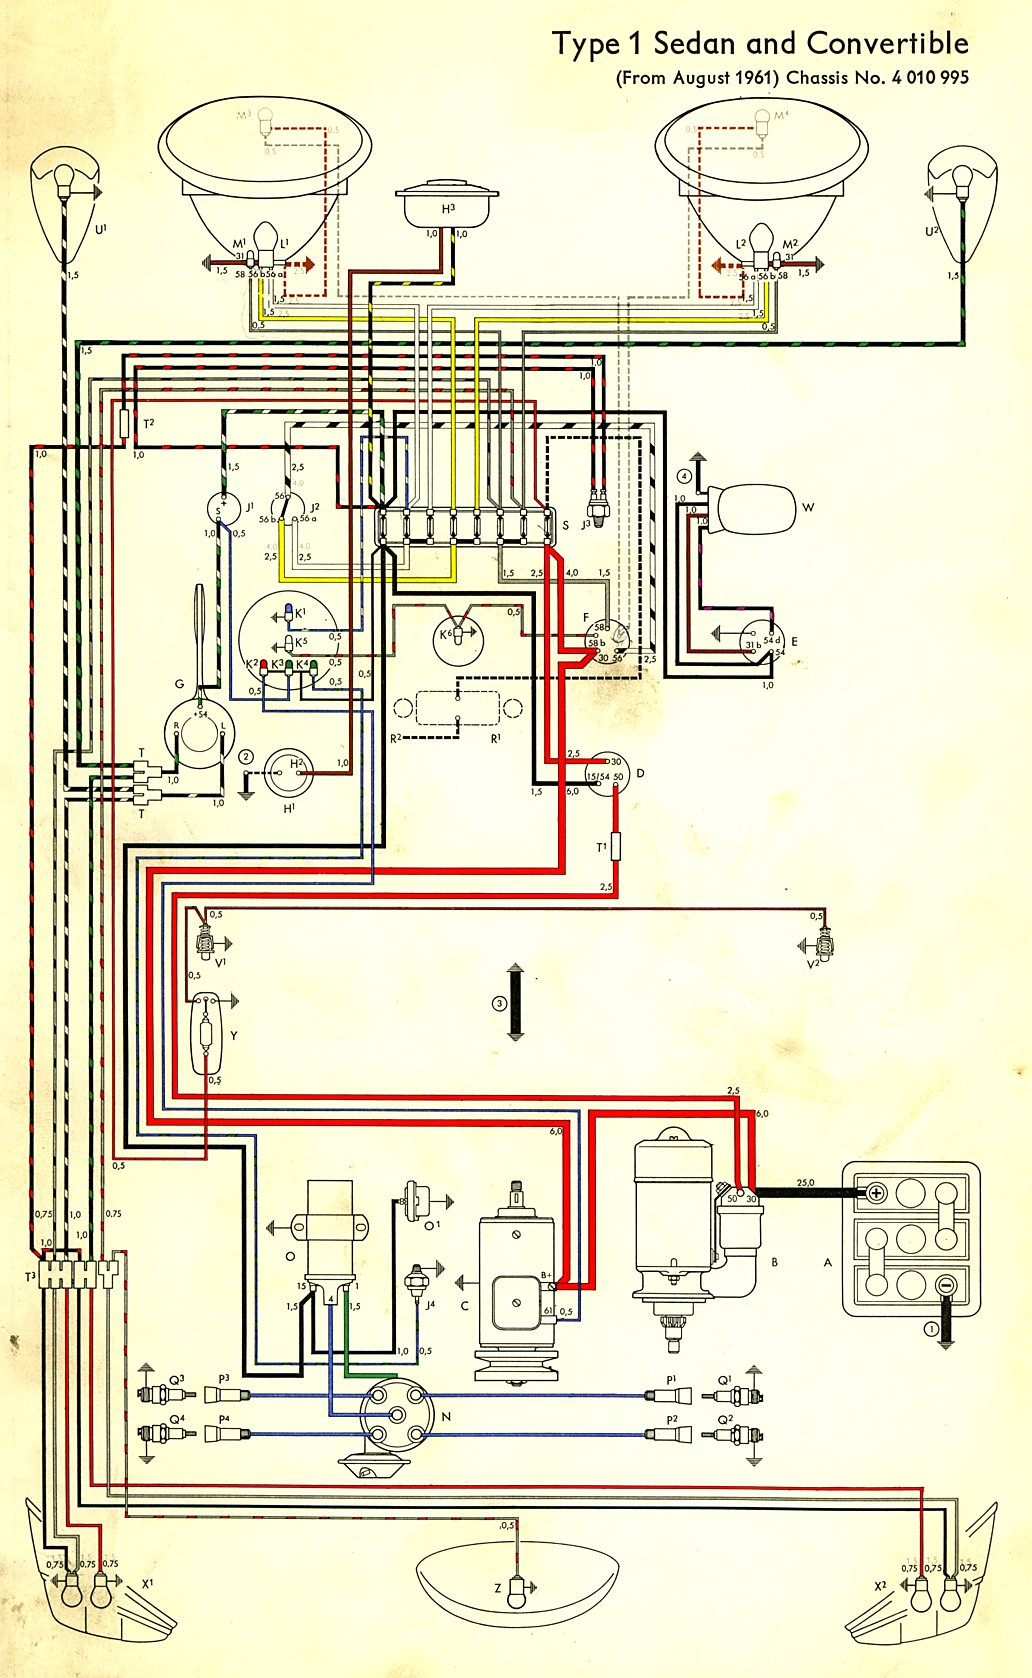 Type 1 Wiring Diagrams 12v Socket Diagram Free Picture Schematic With Inset For Turn Signal Relay